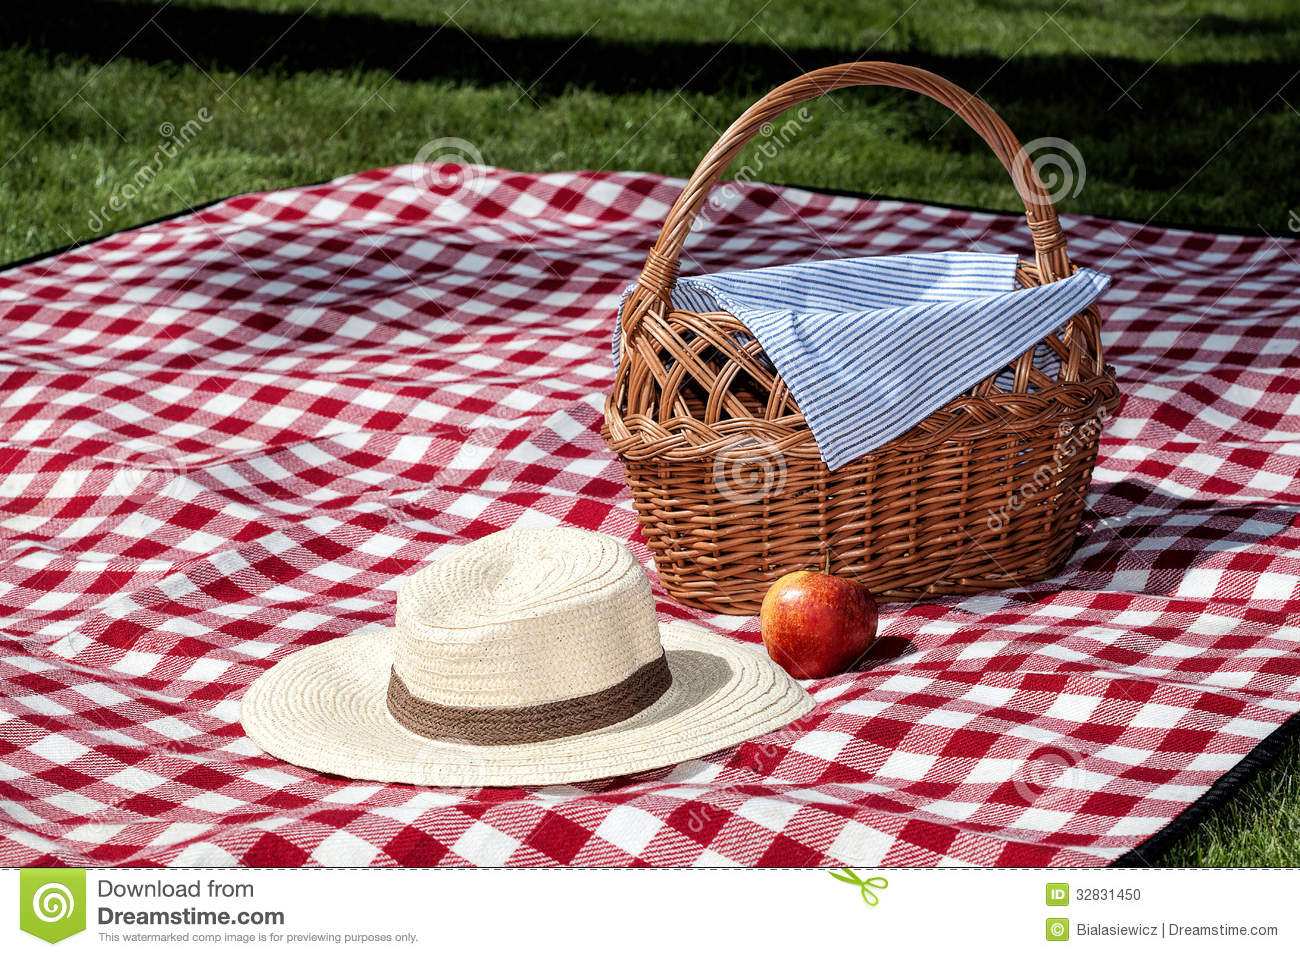 Picnic On The Grass With A Blanket And A Wicker Basket